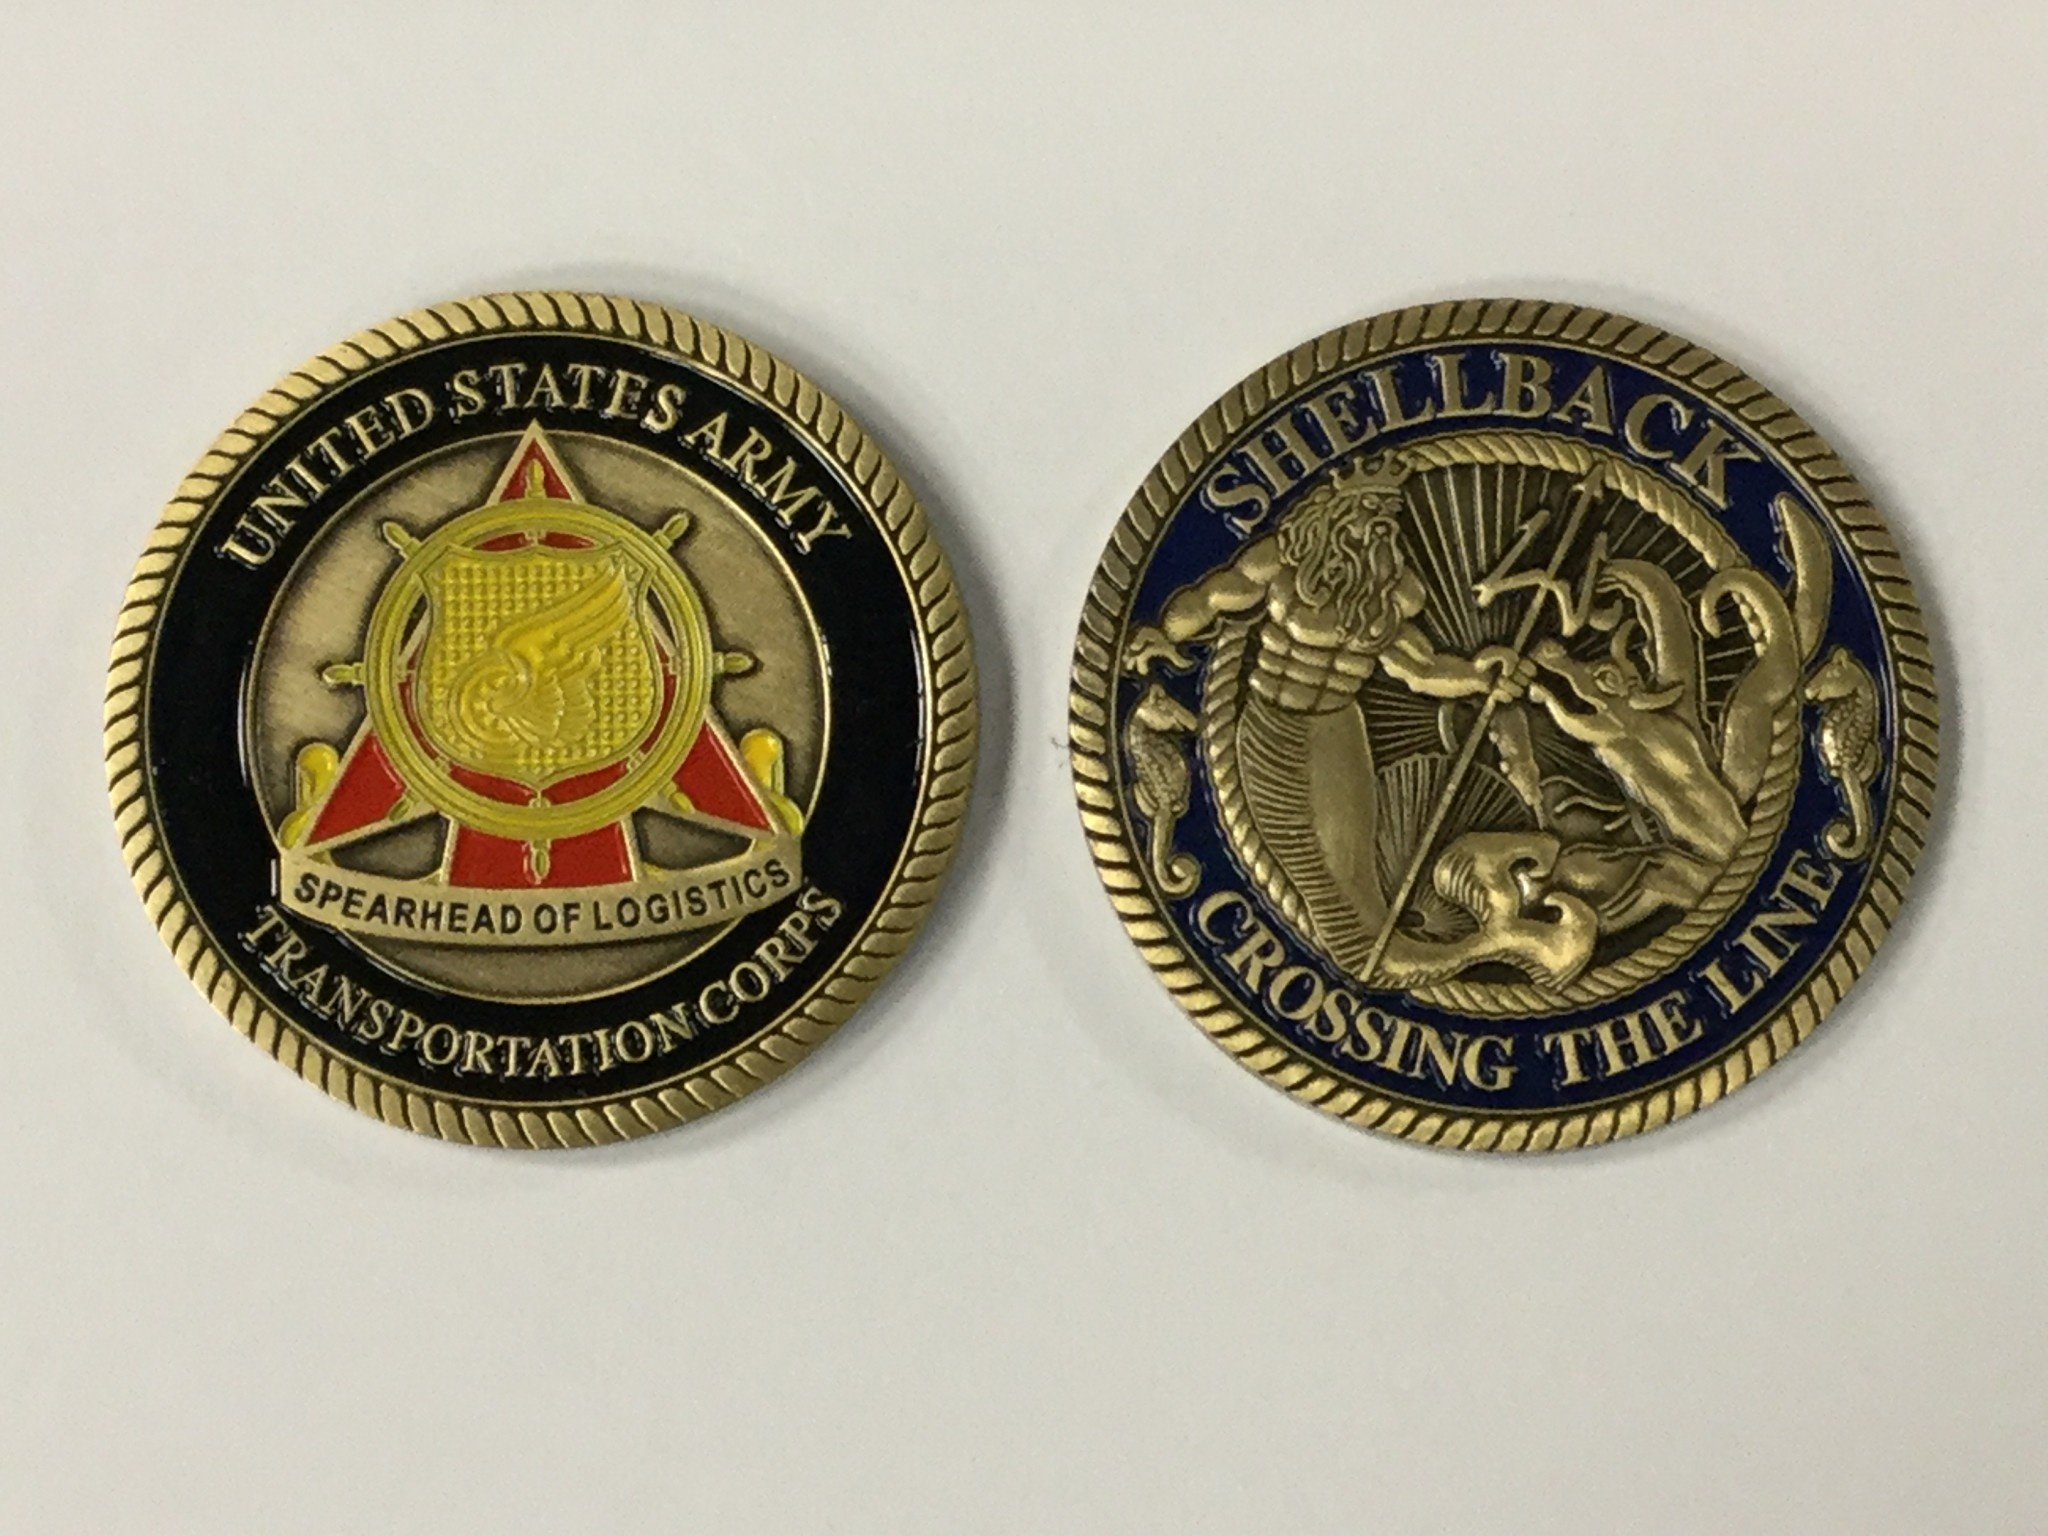 EAGLE CREST, INC. SHELLBACK/CROSSING THE LINE COIN